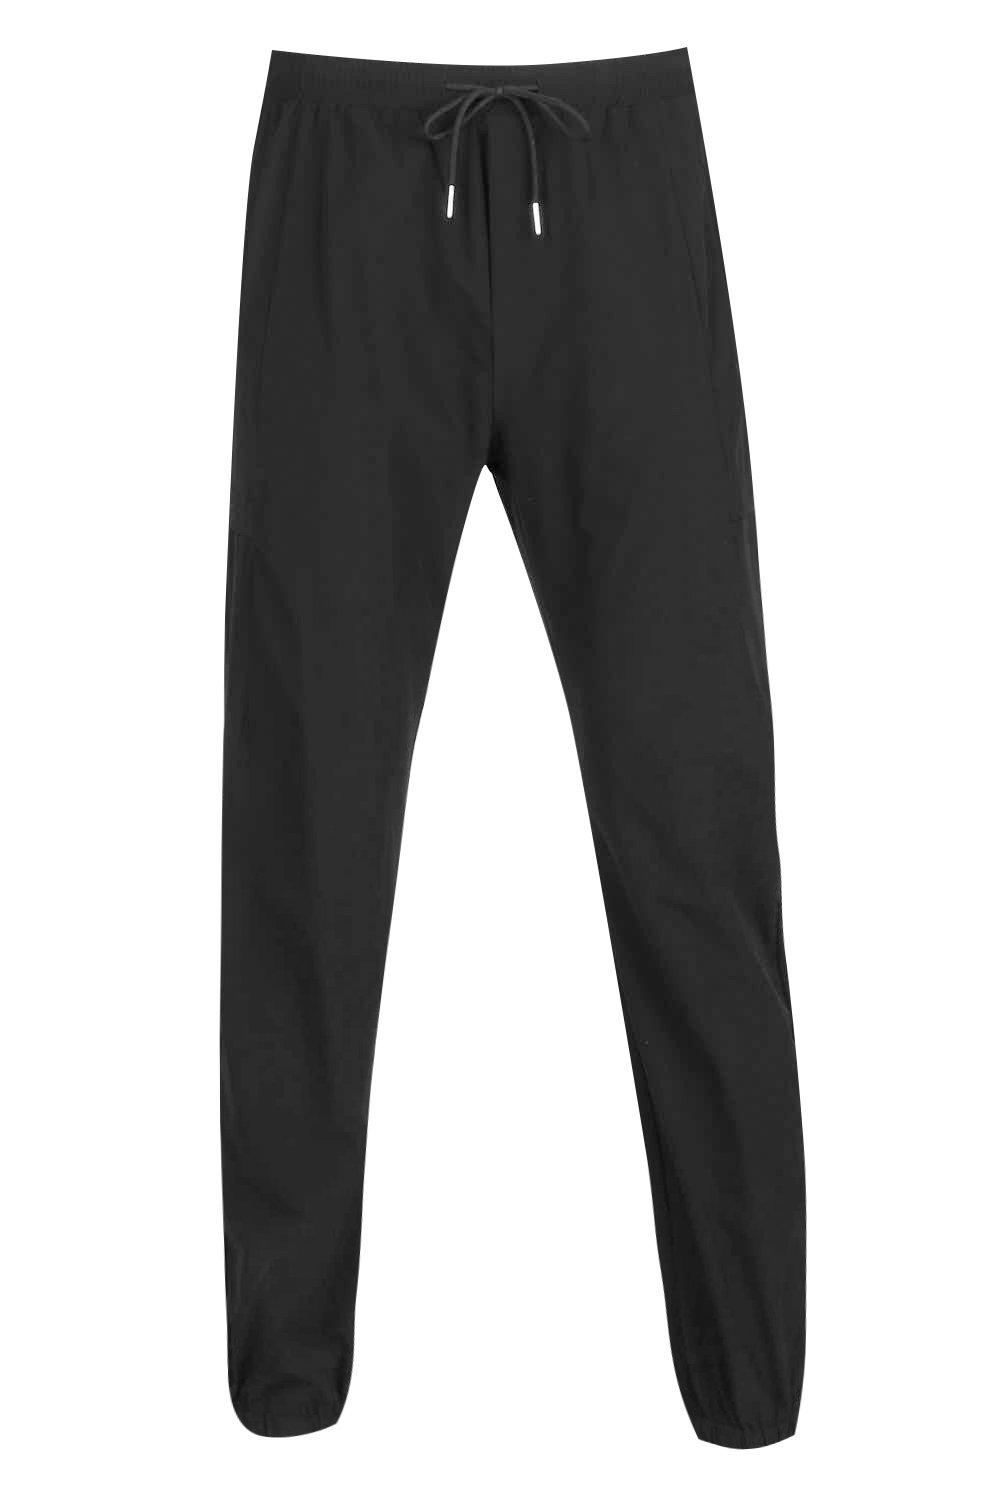 boohooMAN black Woven Jogger With Pocket